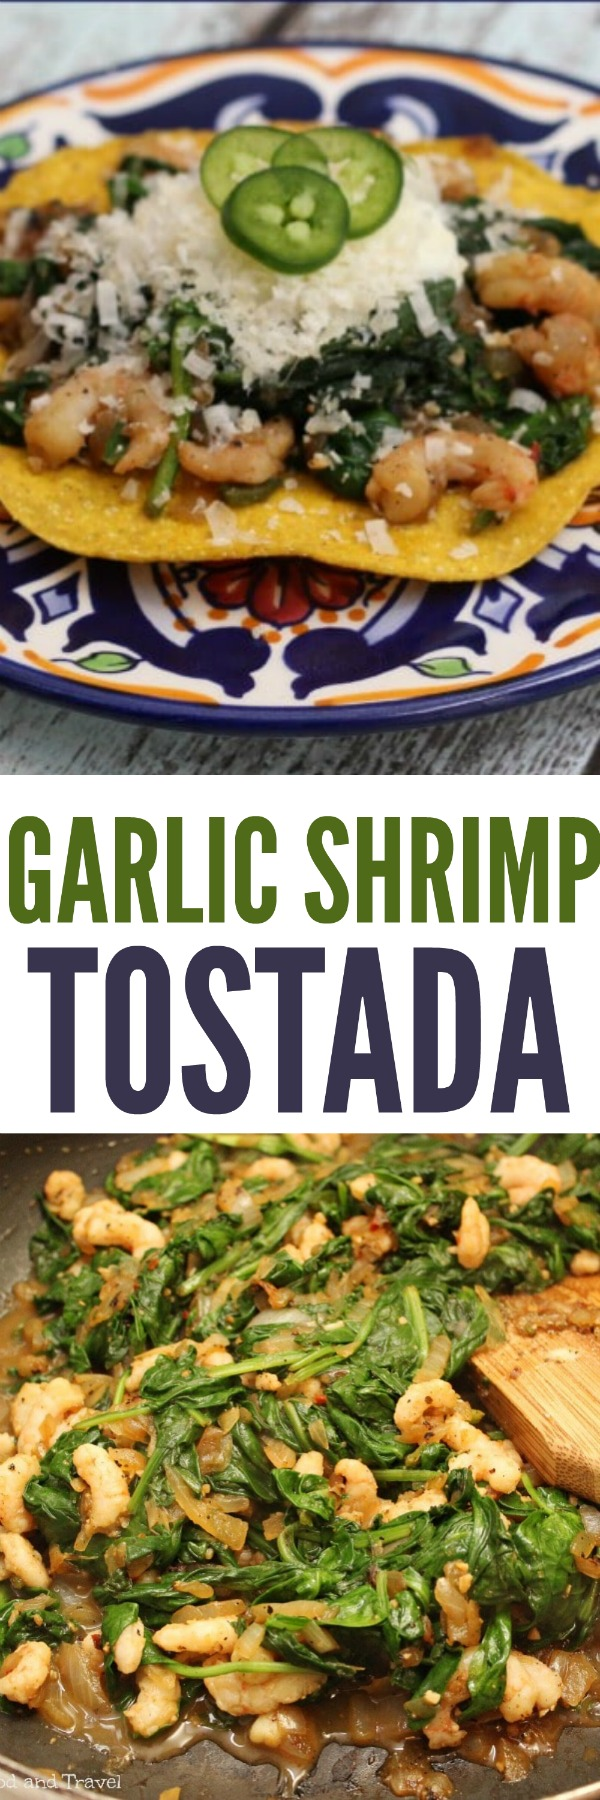 Garlic Shrimp Tostada with Jalapenos